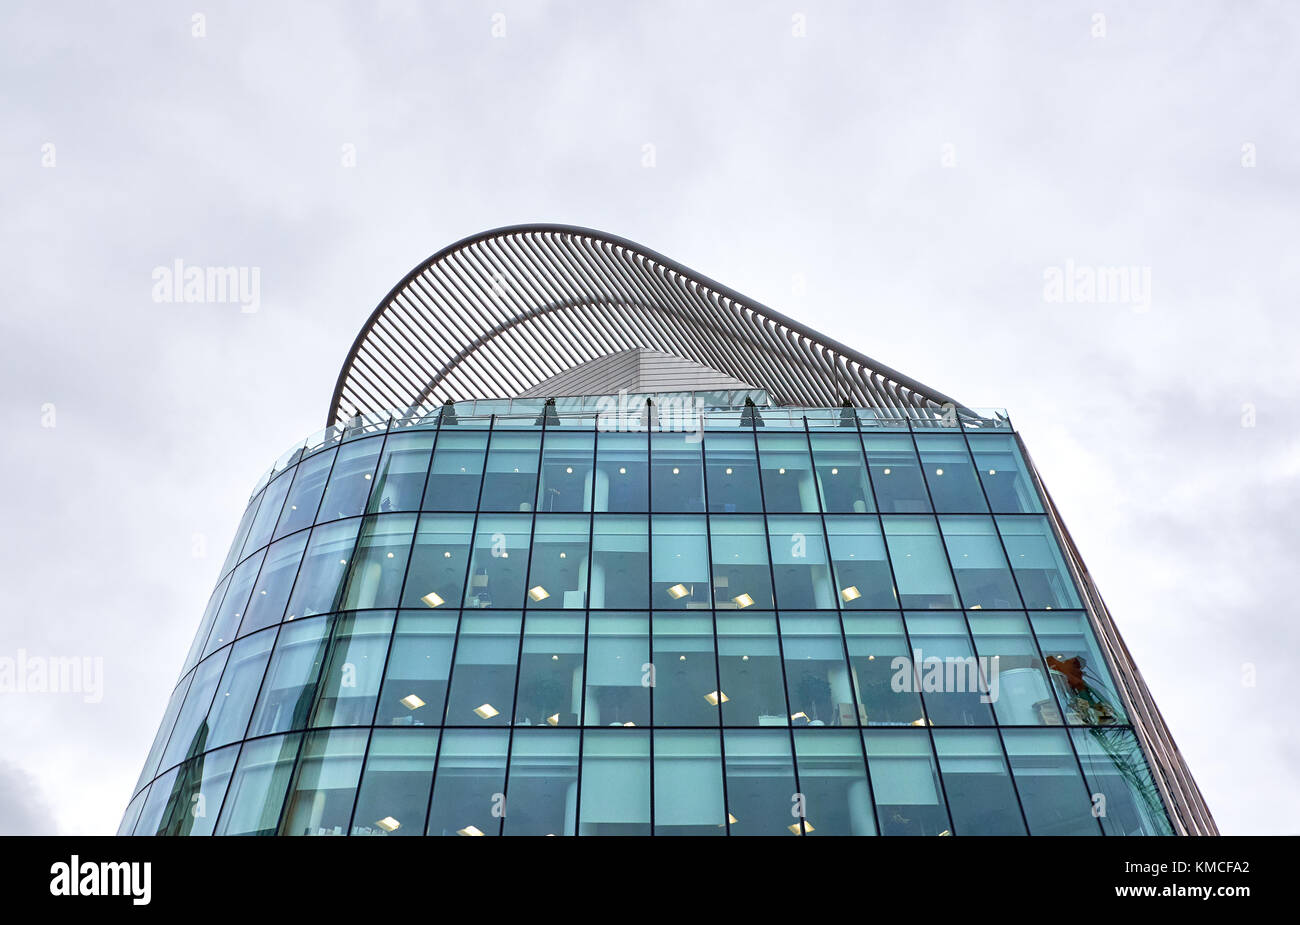 LONDON CITY - DECEMBER 23, 2016: The wavy roof top of a modern highrise building on Vauxhall Bridge road near Victoria - Stock Image